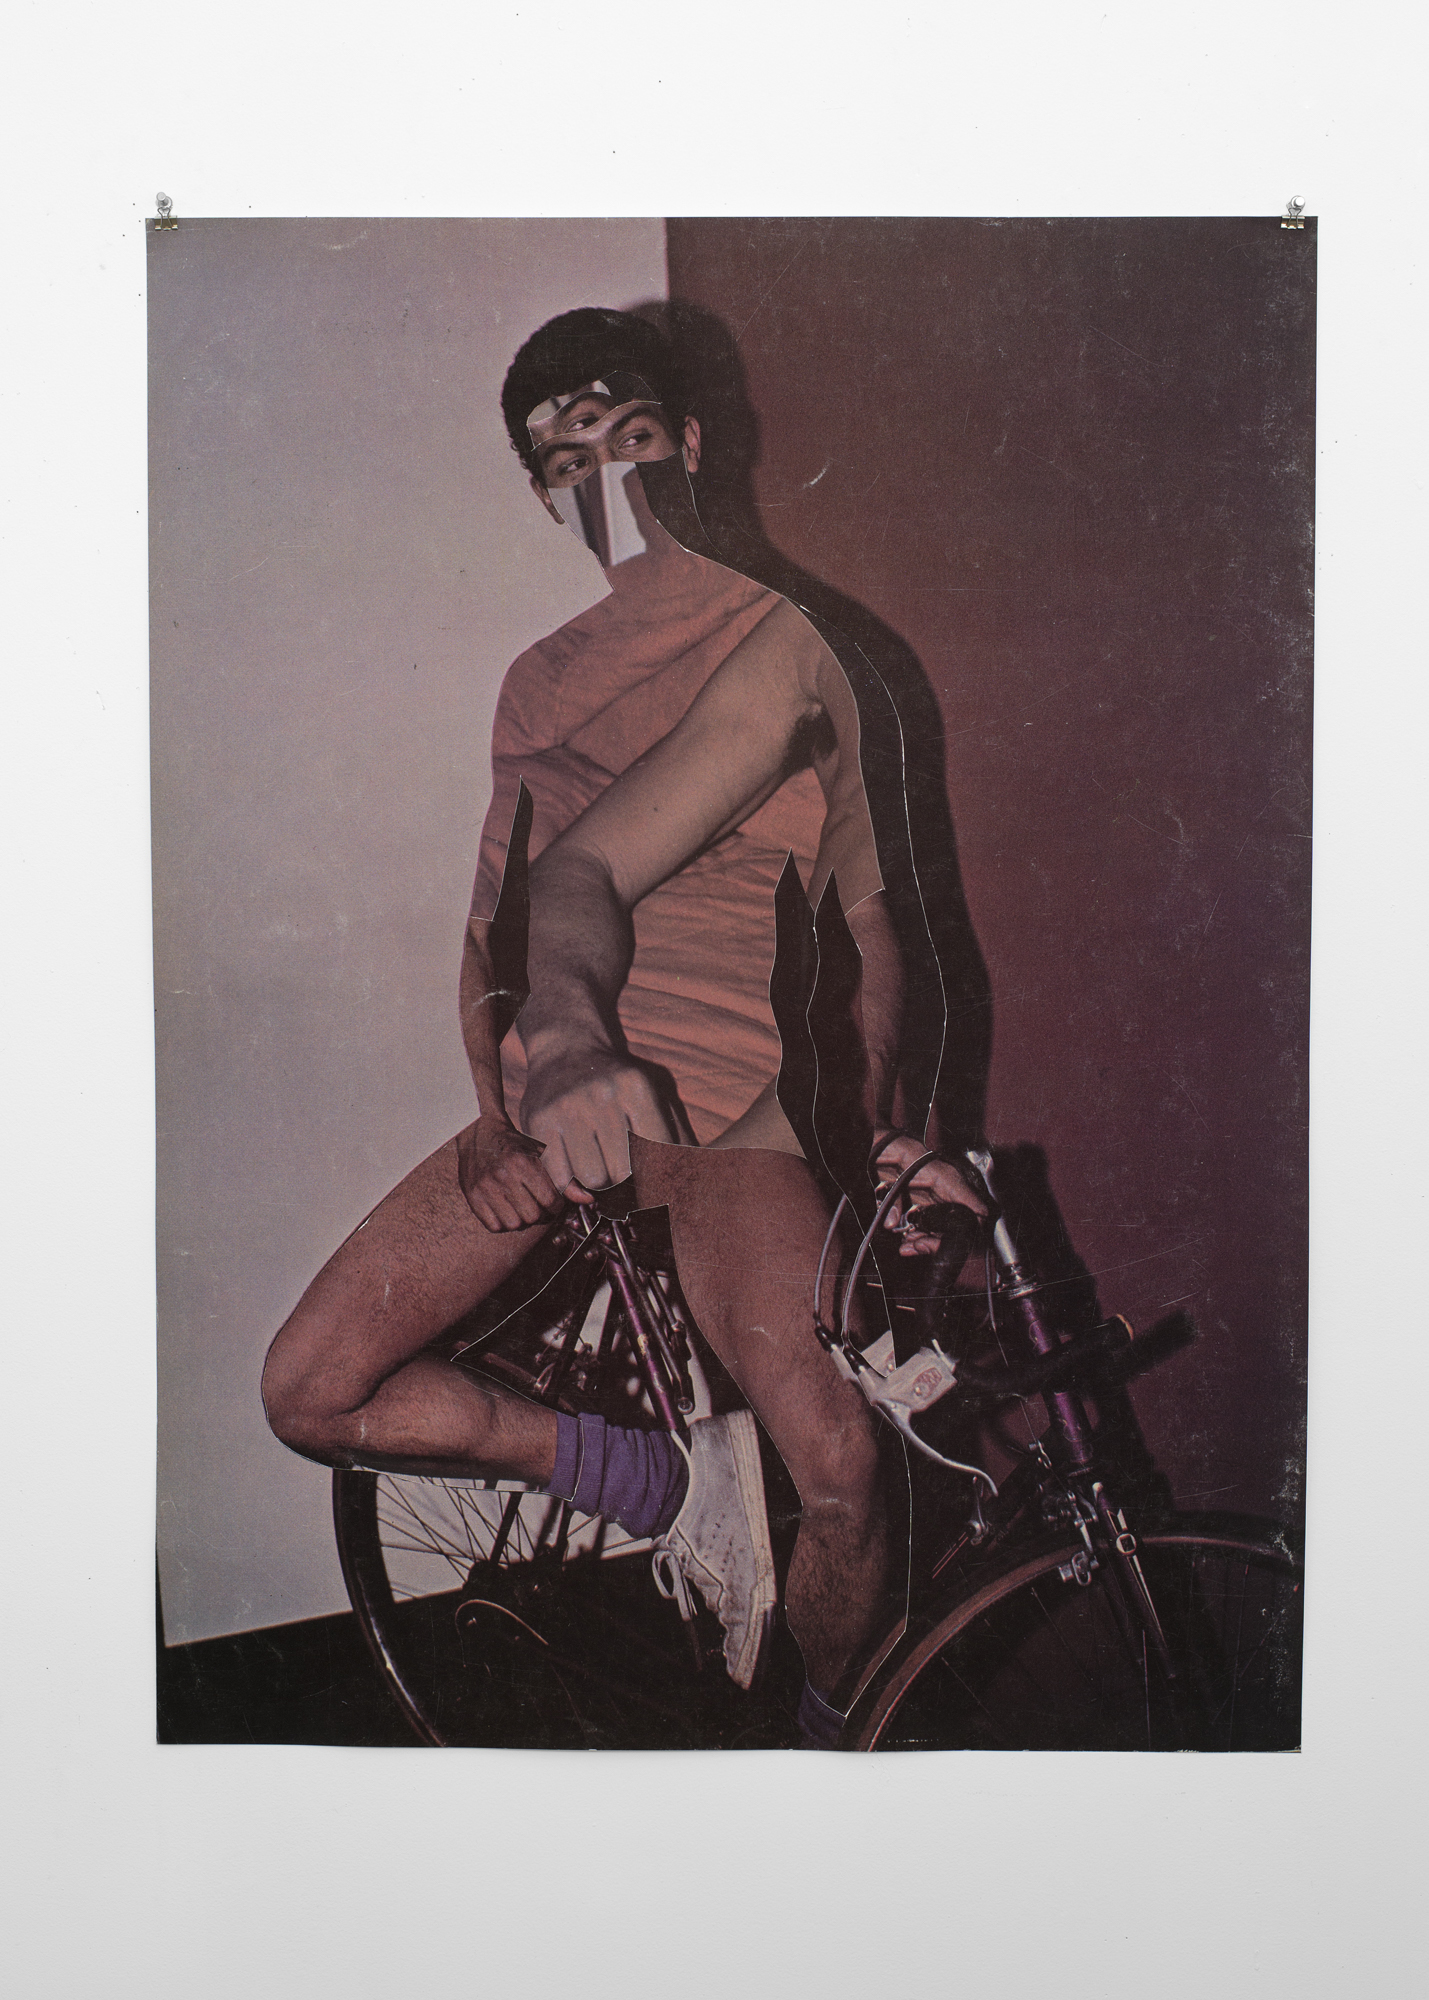 Troy Michie,  La Bicicleta , 2015. Digital inkjet print collage, 41 ½ × 35 in (105.4 × 89 cm). Courtesy the artist